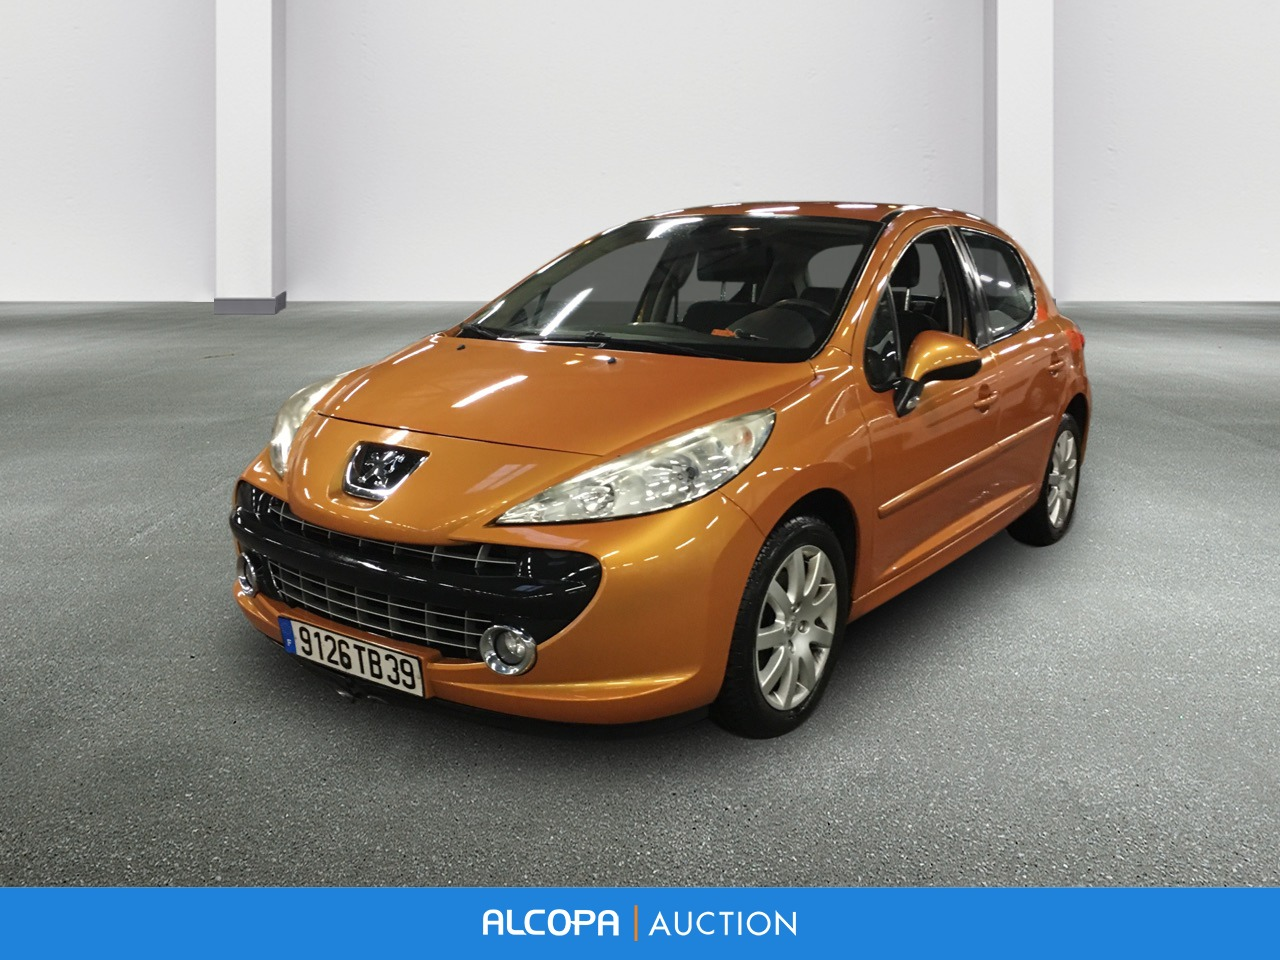 peugeot 207 207 1 6 hdi 16v 90ch executive alcopa auction. Black Bedroom Furniture Sets. Home Design Ideas